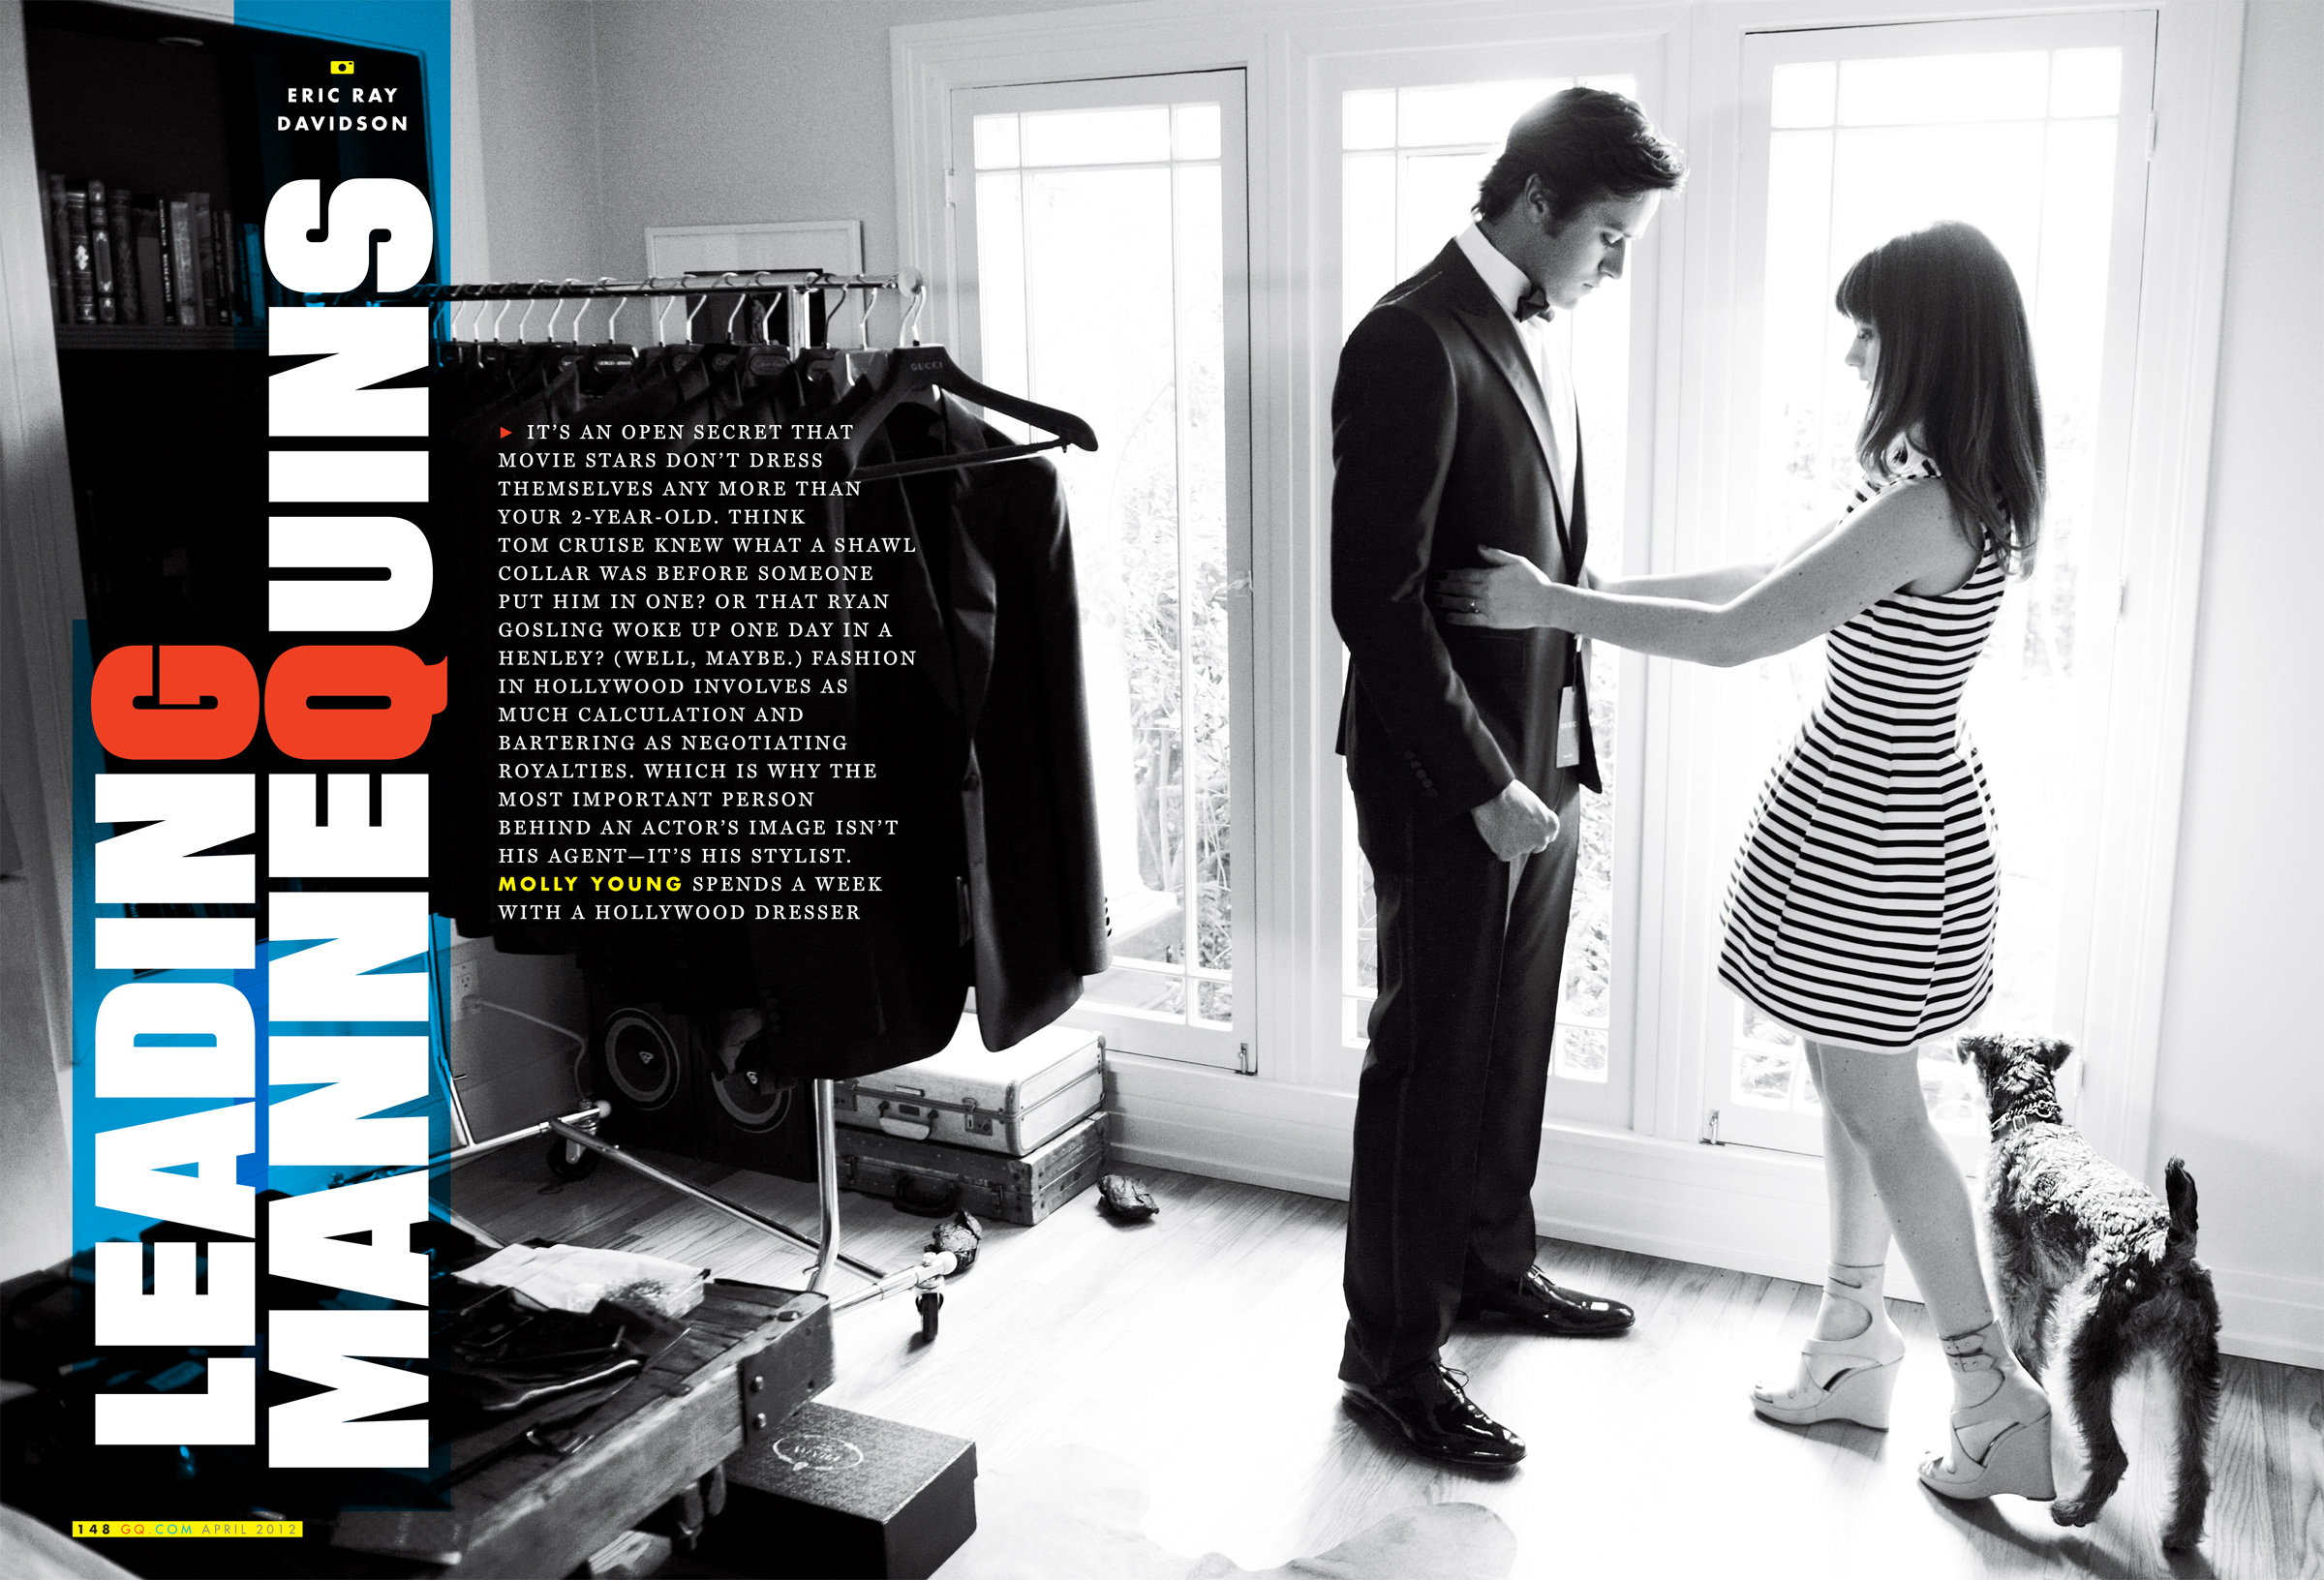 Gq Style Guide With Armie Hammer By Eric Ray Davidson Blogwing